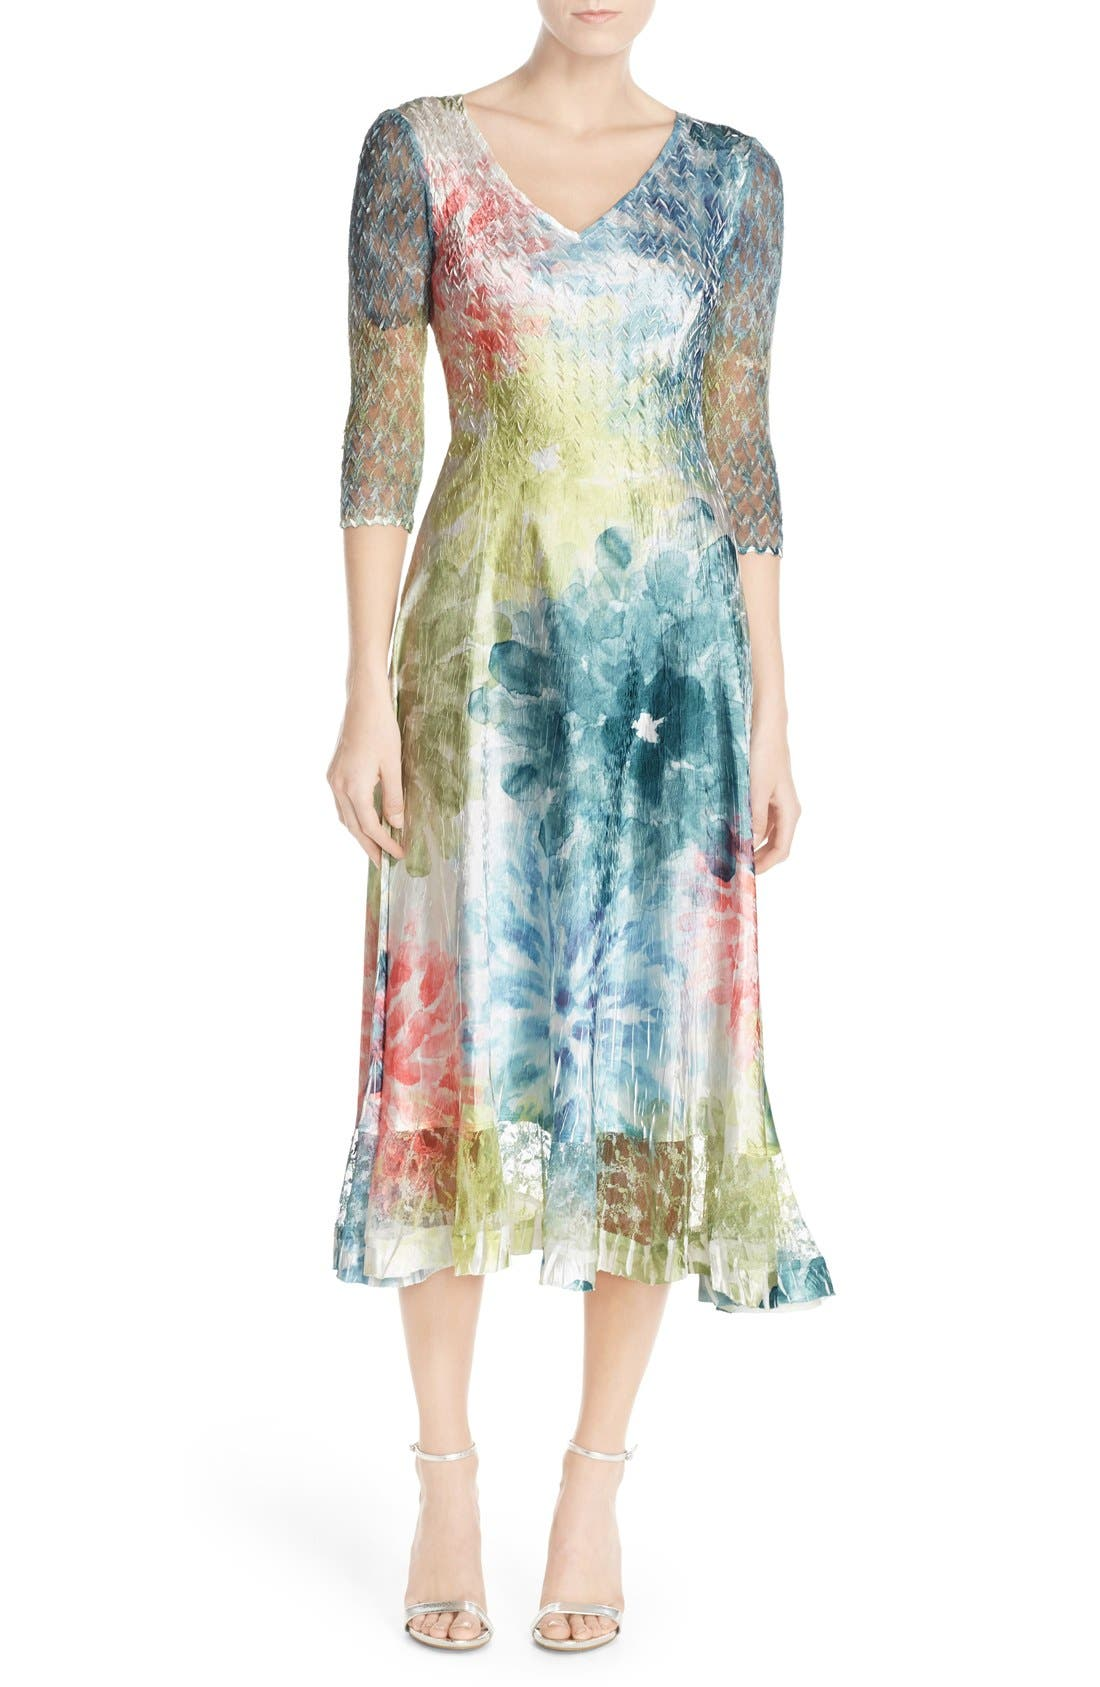 Main Image - Komarov Mixed Media A-Line Dress (Regular & Petite)